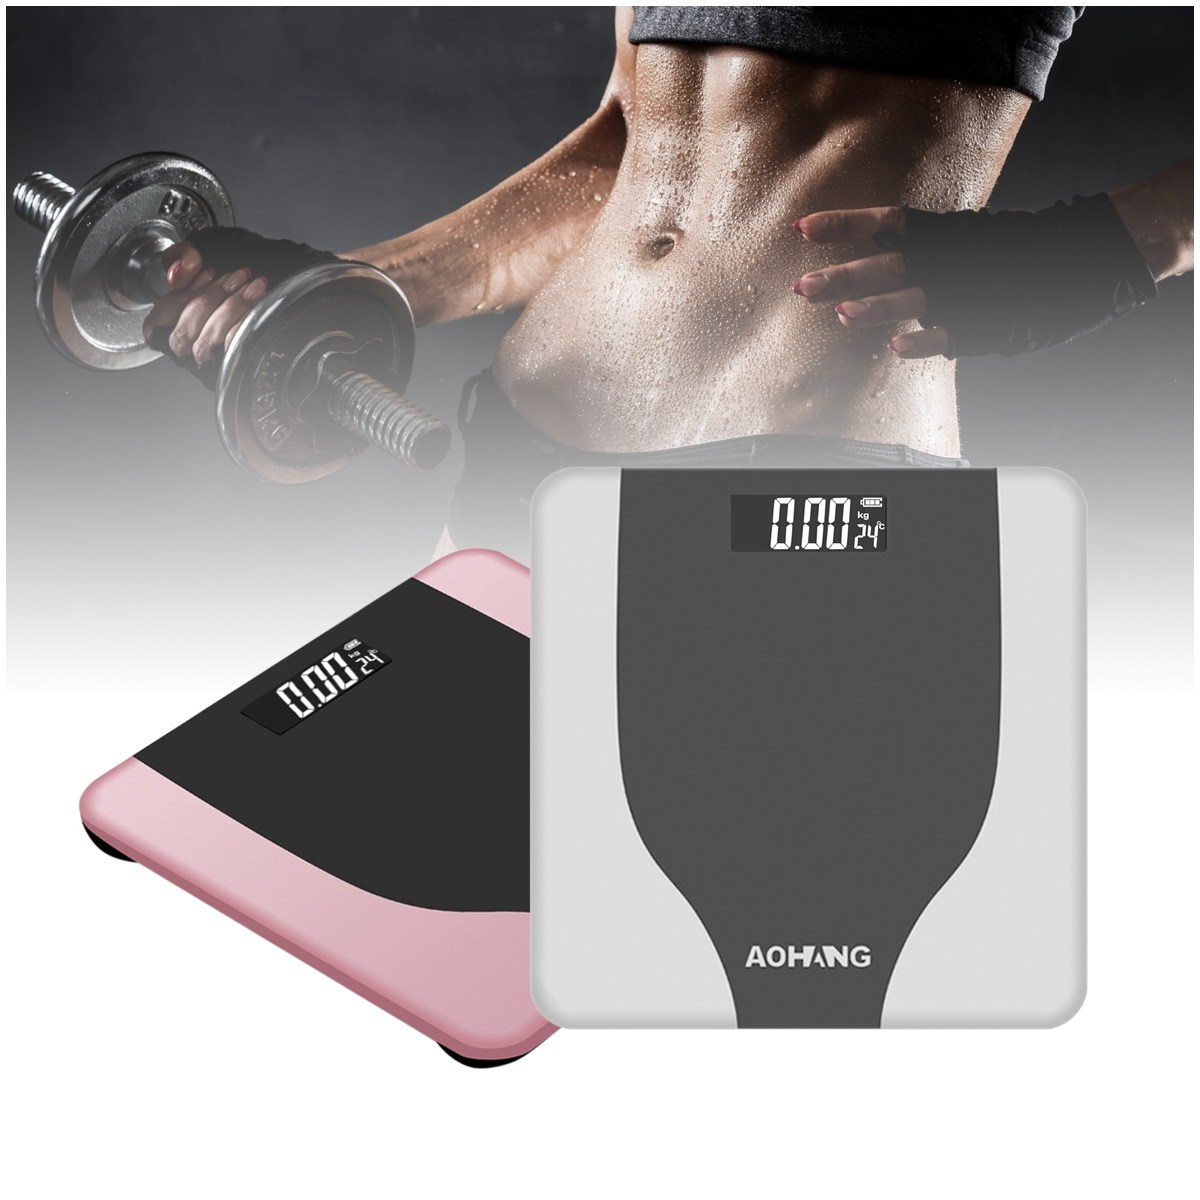 190kg/400lb Electronic LCD Digitial Bathroom Scales USB Charging Body Weight Scale Fitness Fat Healty Beauty Tempered Glass